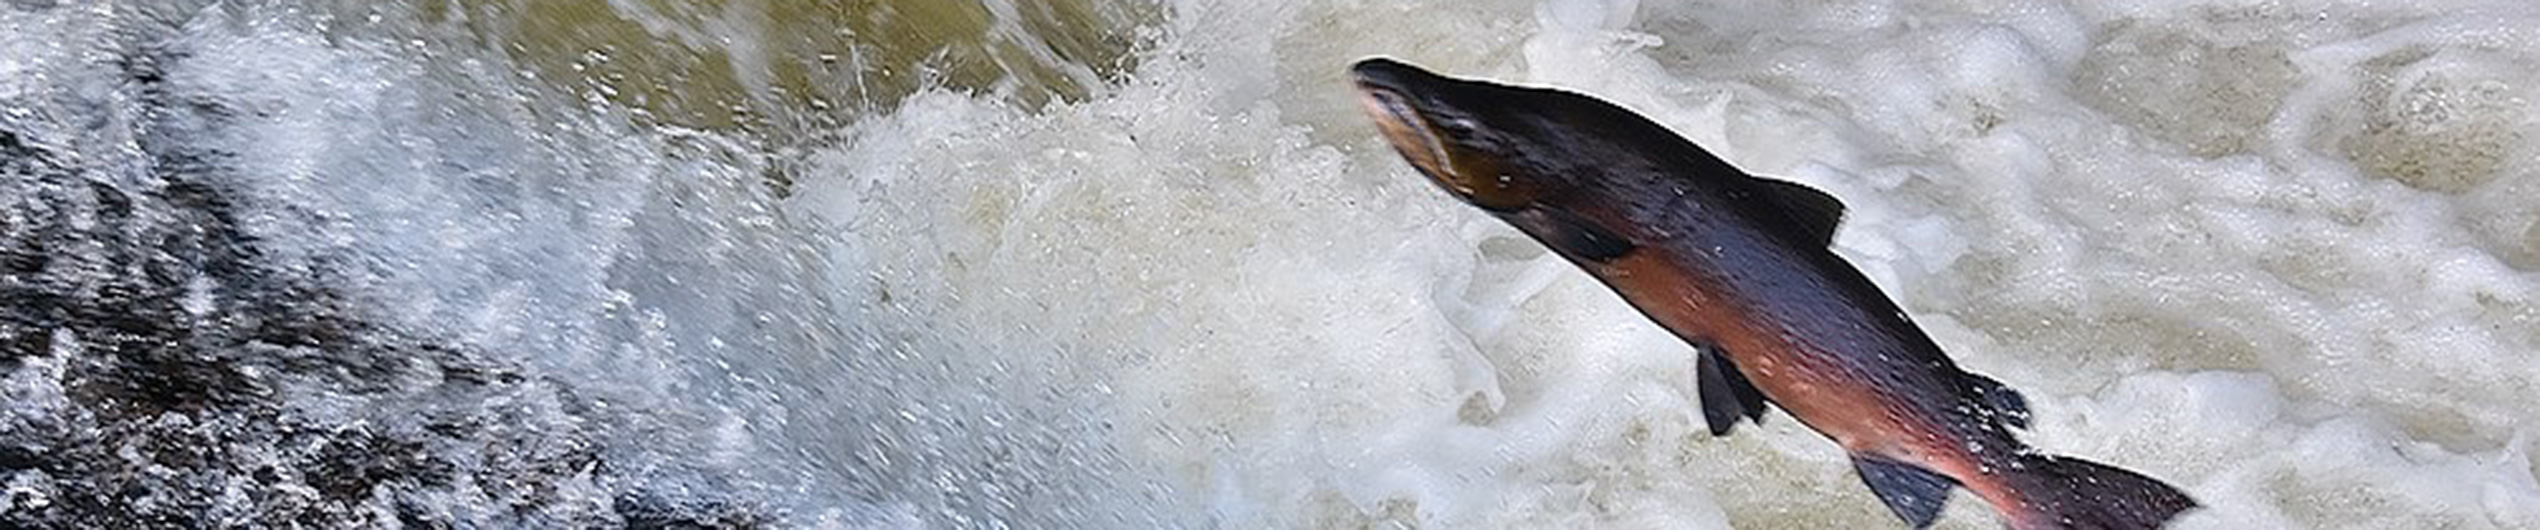 Majestic salmon to leap the Avon Falls once again